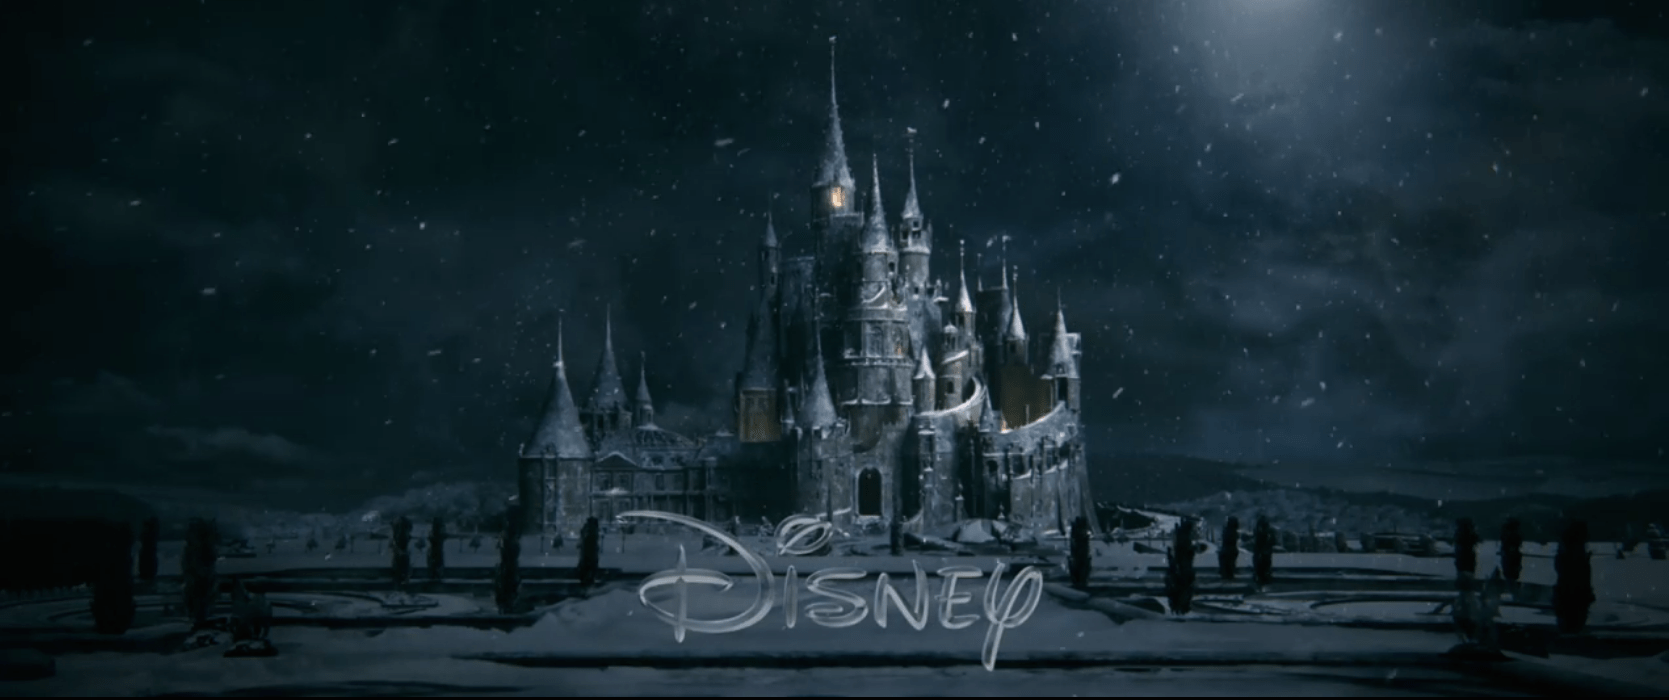 Falling Snow Live Wallpaper For Pc The Psychological Horror Of Disney S New Beauty And The Beast